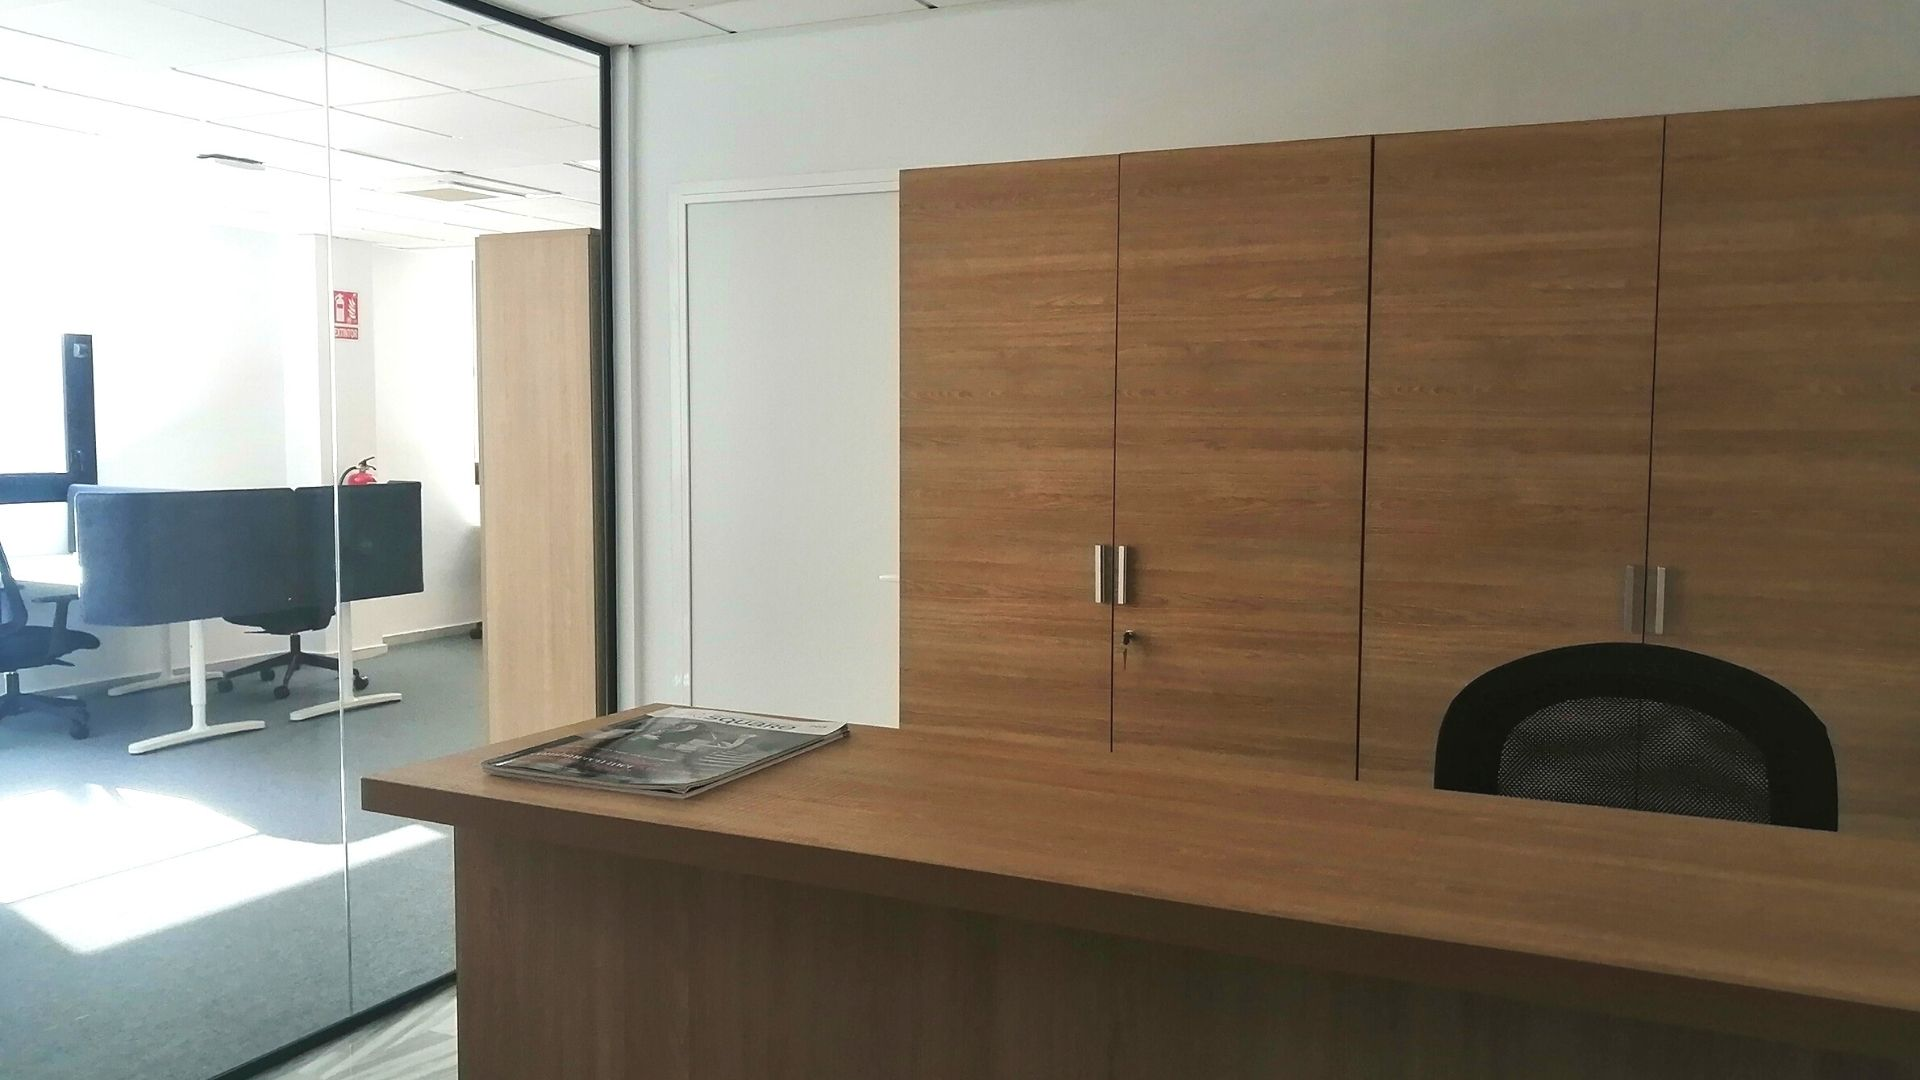 Our new Adessa office in Malaga is open! - reception